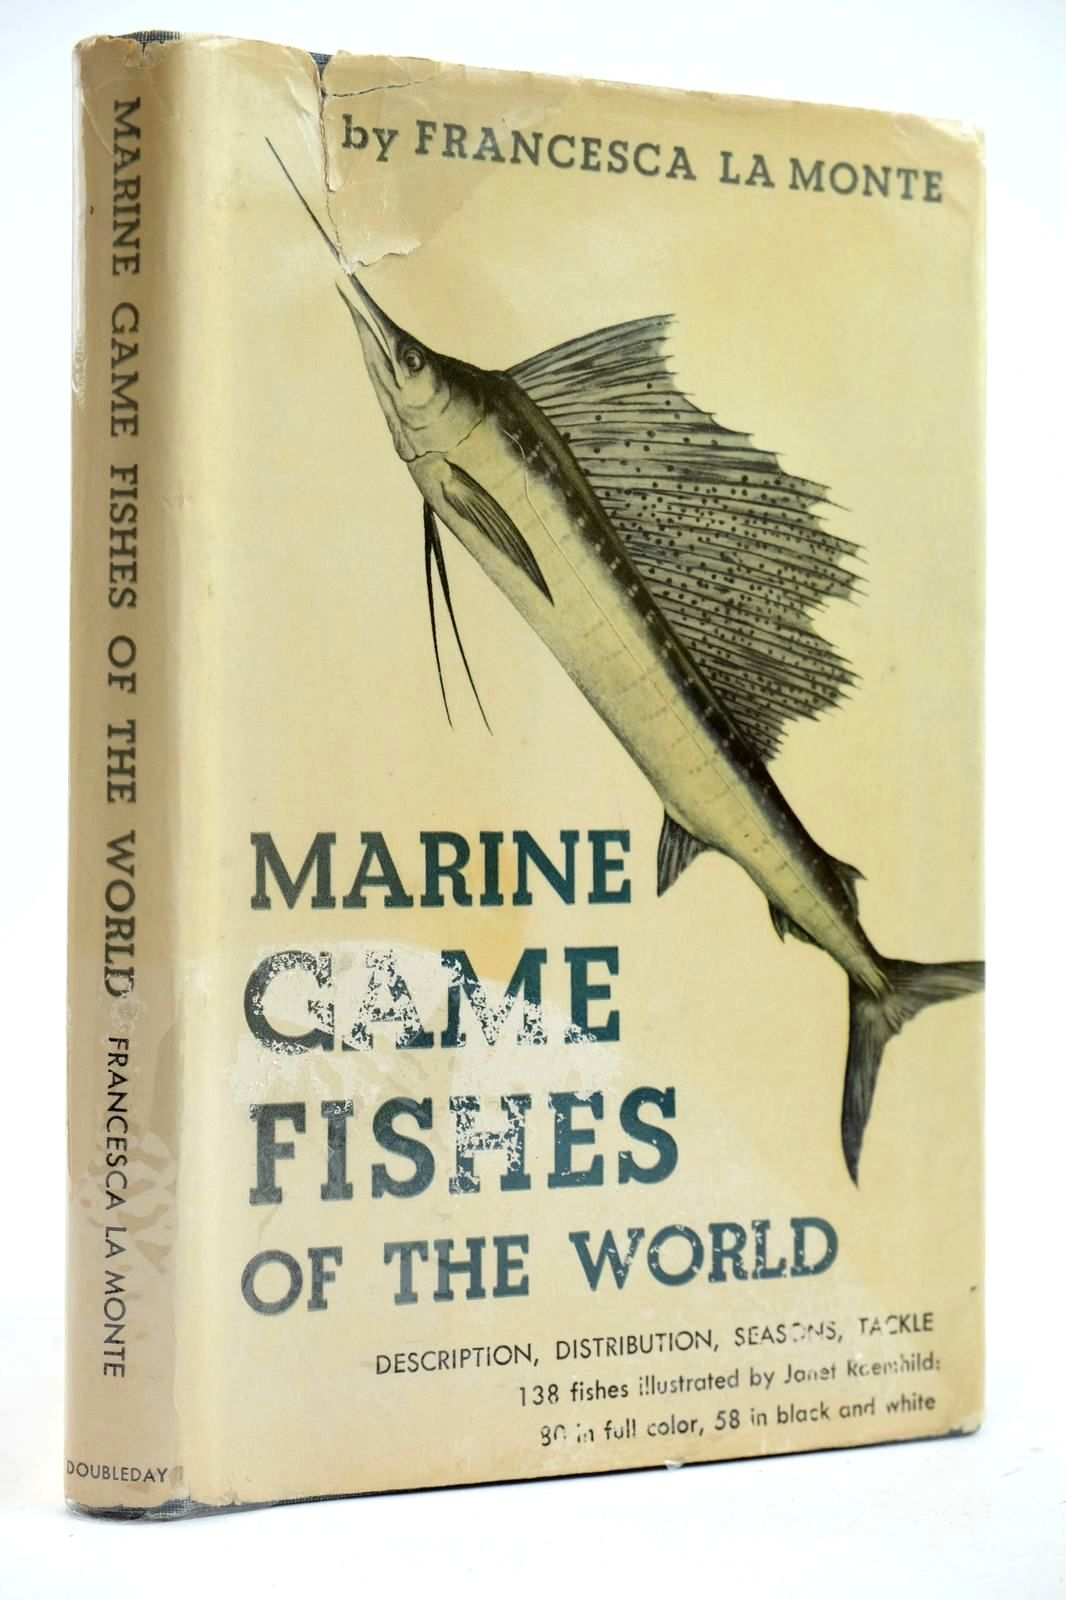 Photo of MARINE GAME FISHES OF THE WORLD written by La Monte, Francesca illustrated by Roemhild, Janet published by Doubleday & Company, Inc. (STOCK CODE: 2132678)  for sale by Stella & Rose's Books